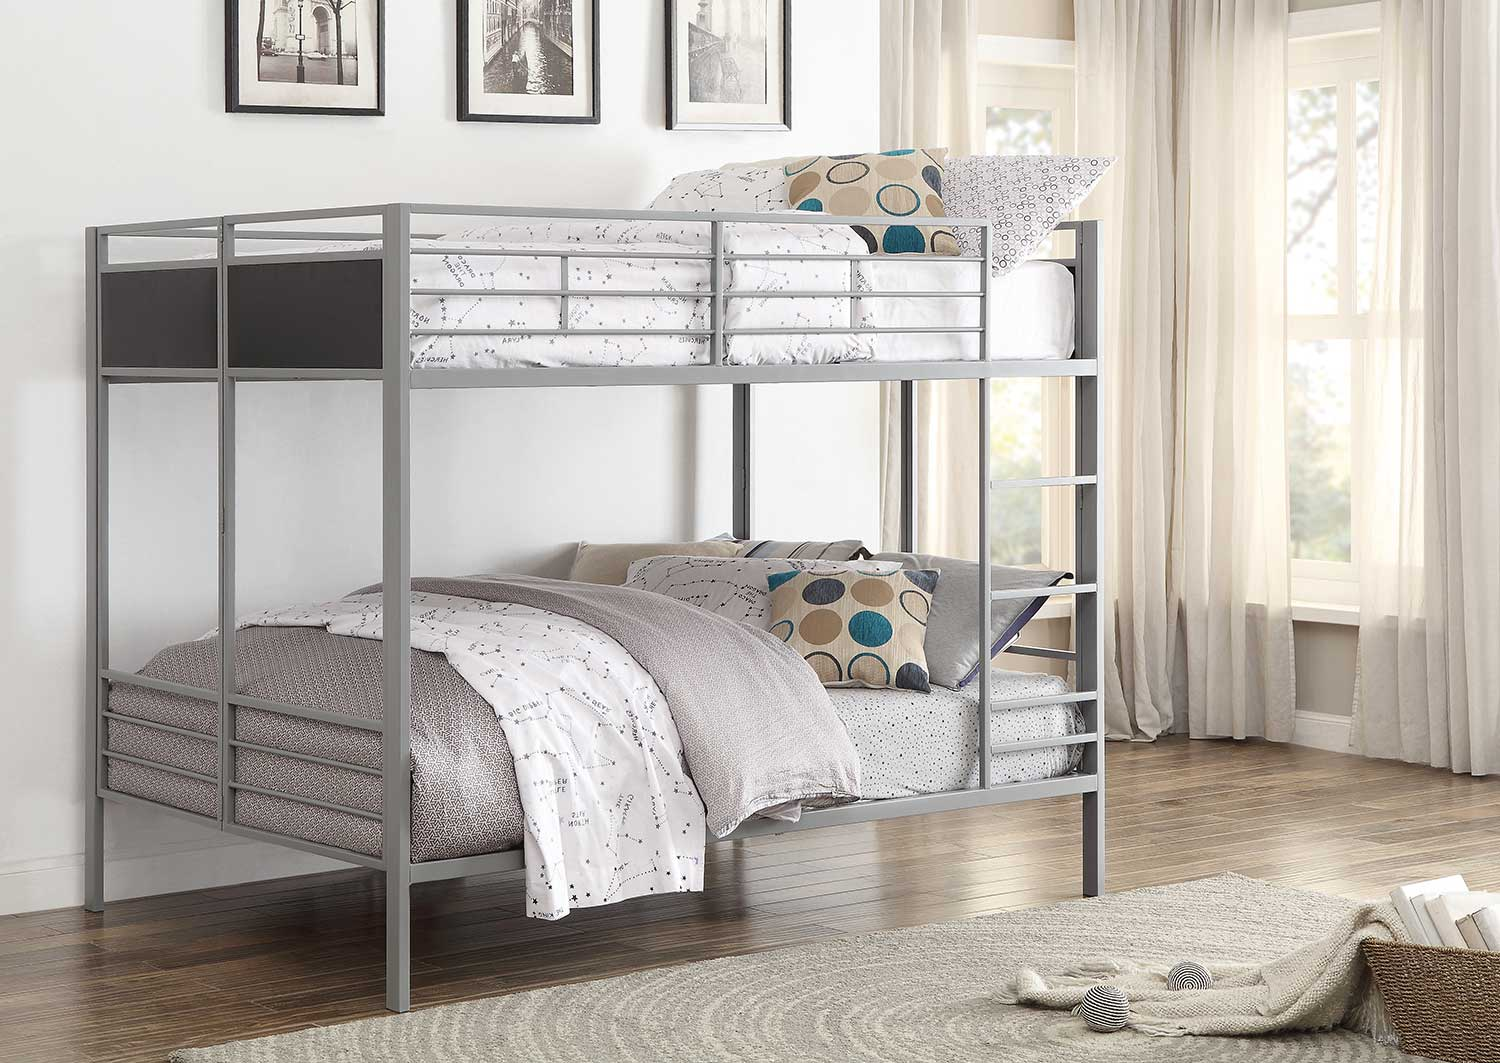 Homelegance Dex Full/Full Bunk Bed - Grey